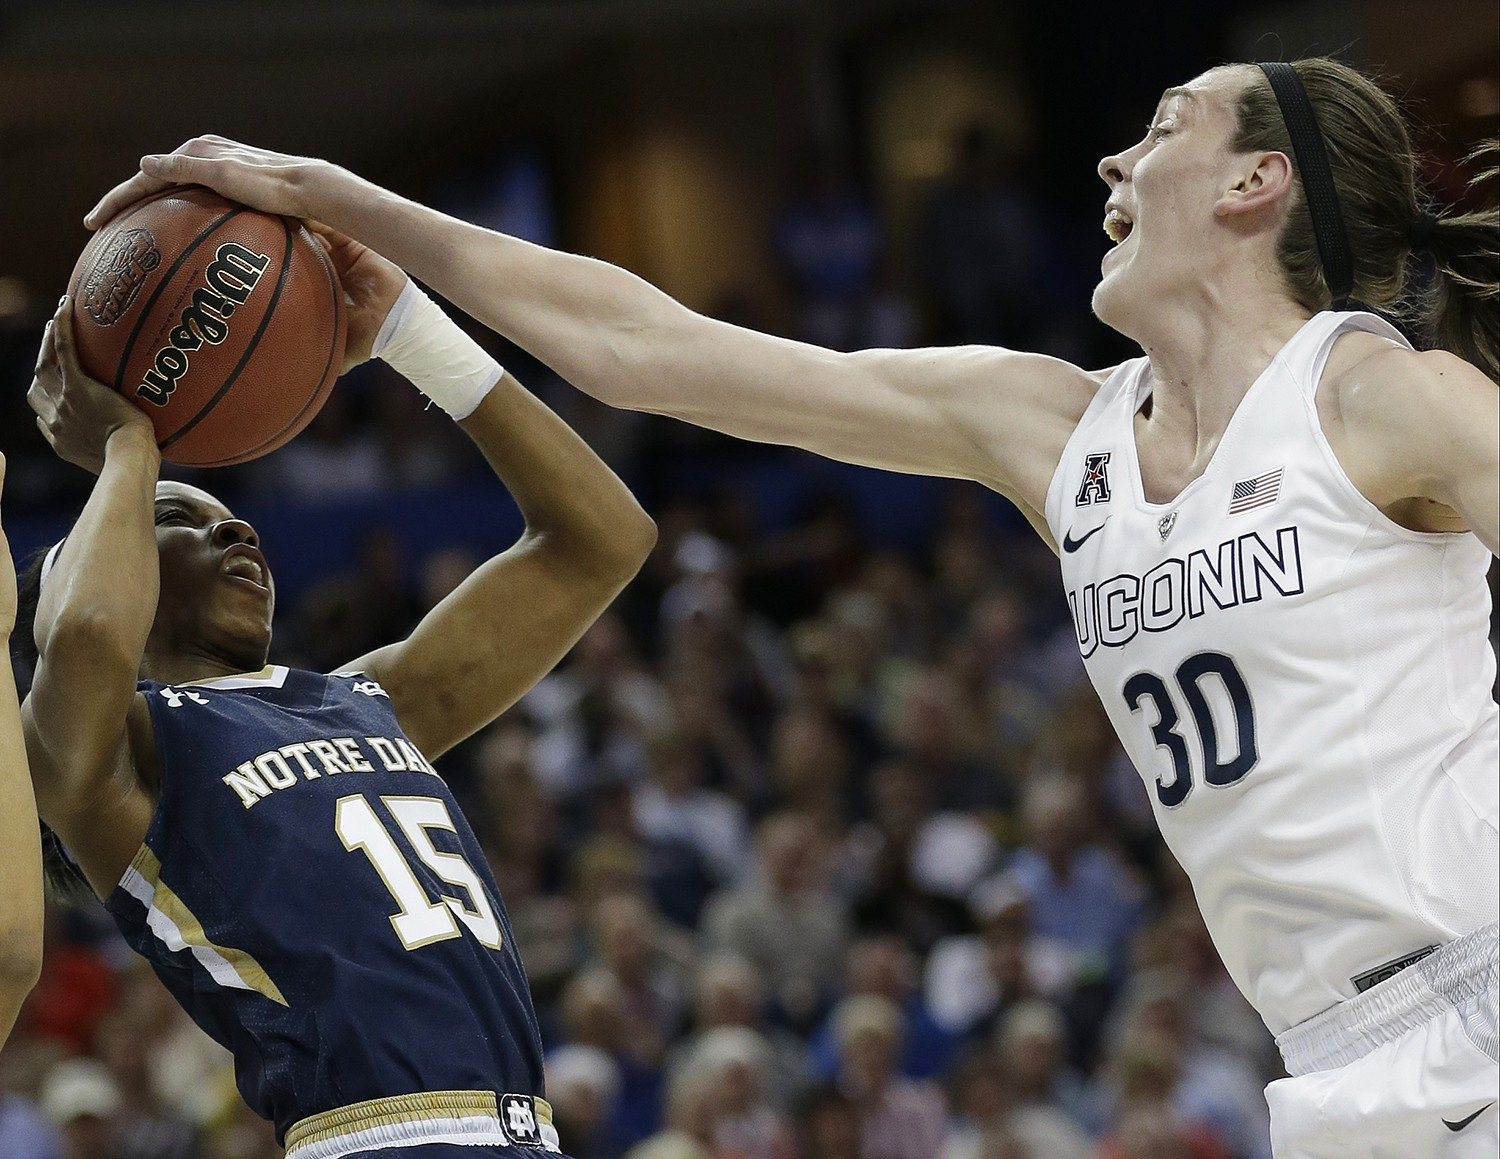 John Raoux/APNotre Dame guard Lindsay Allen (15) is stopped by Connecticut forward Breanna Stewart (30) during Tuesday's NCAA women's basketball championship game.